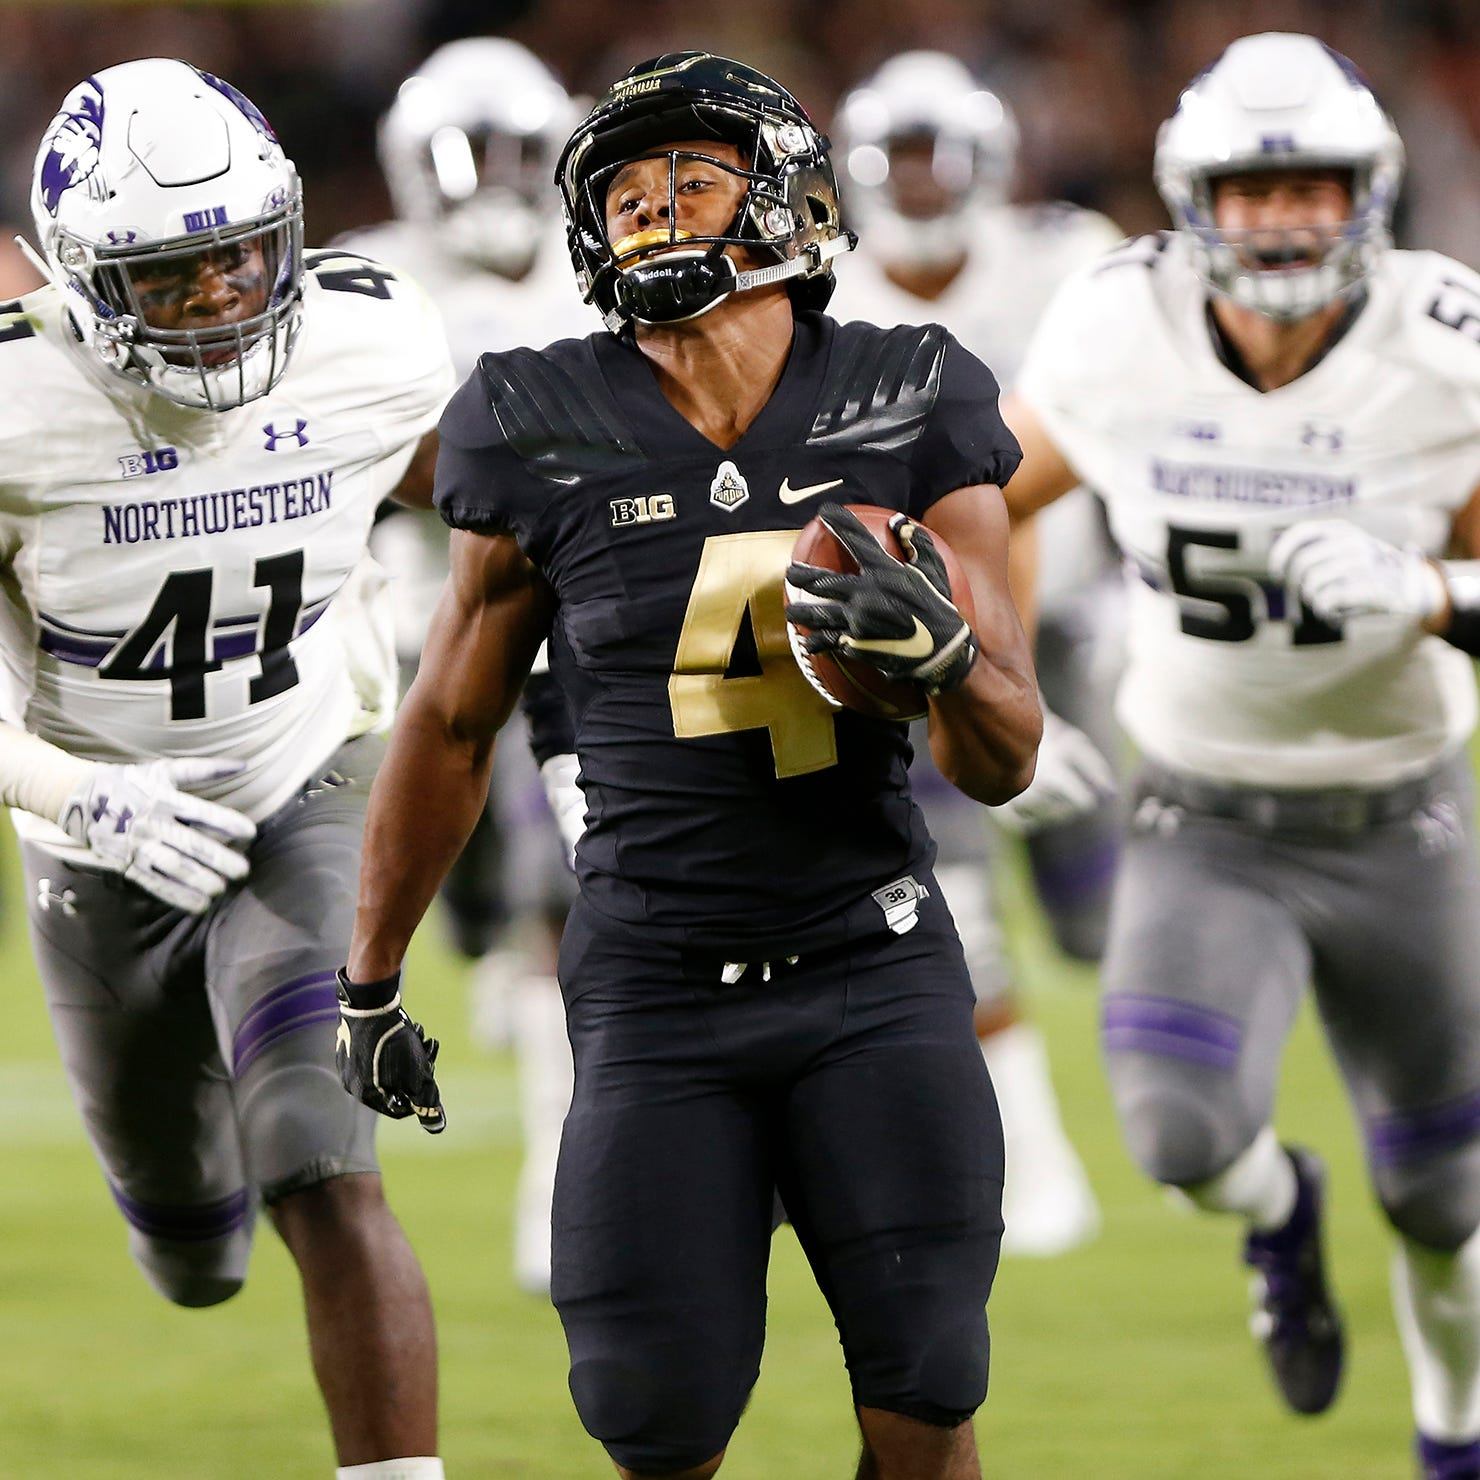 Doyel: Rondale Moore, Jeff Brohm and Purdue will become problem for the Big Ten